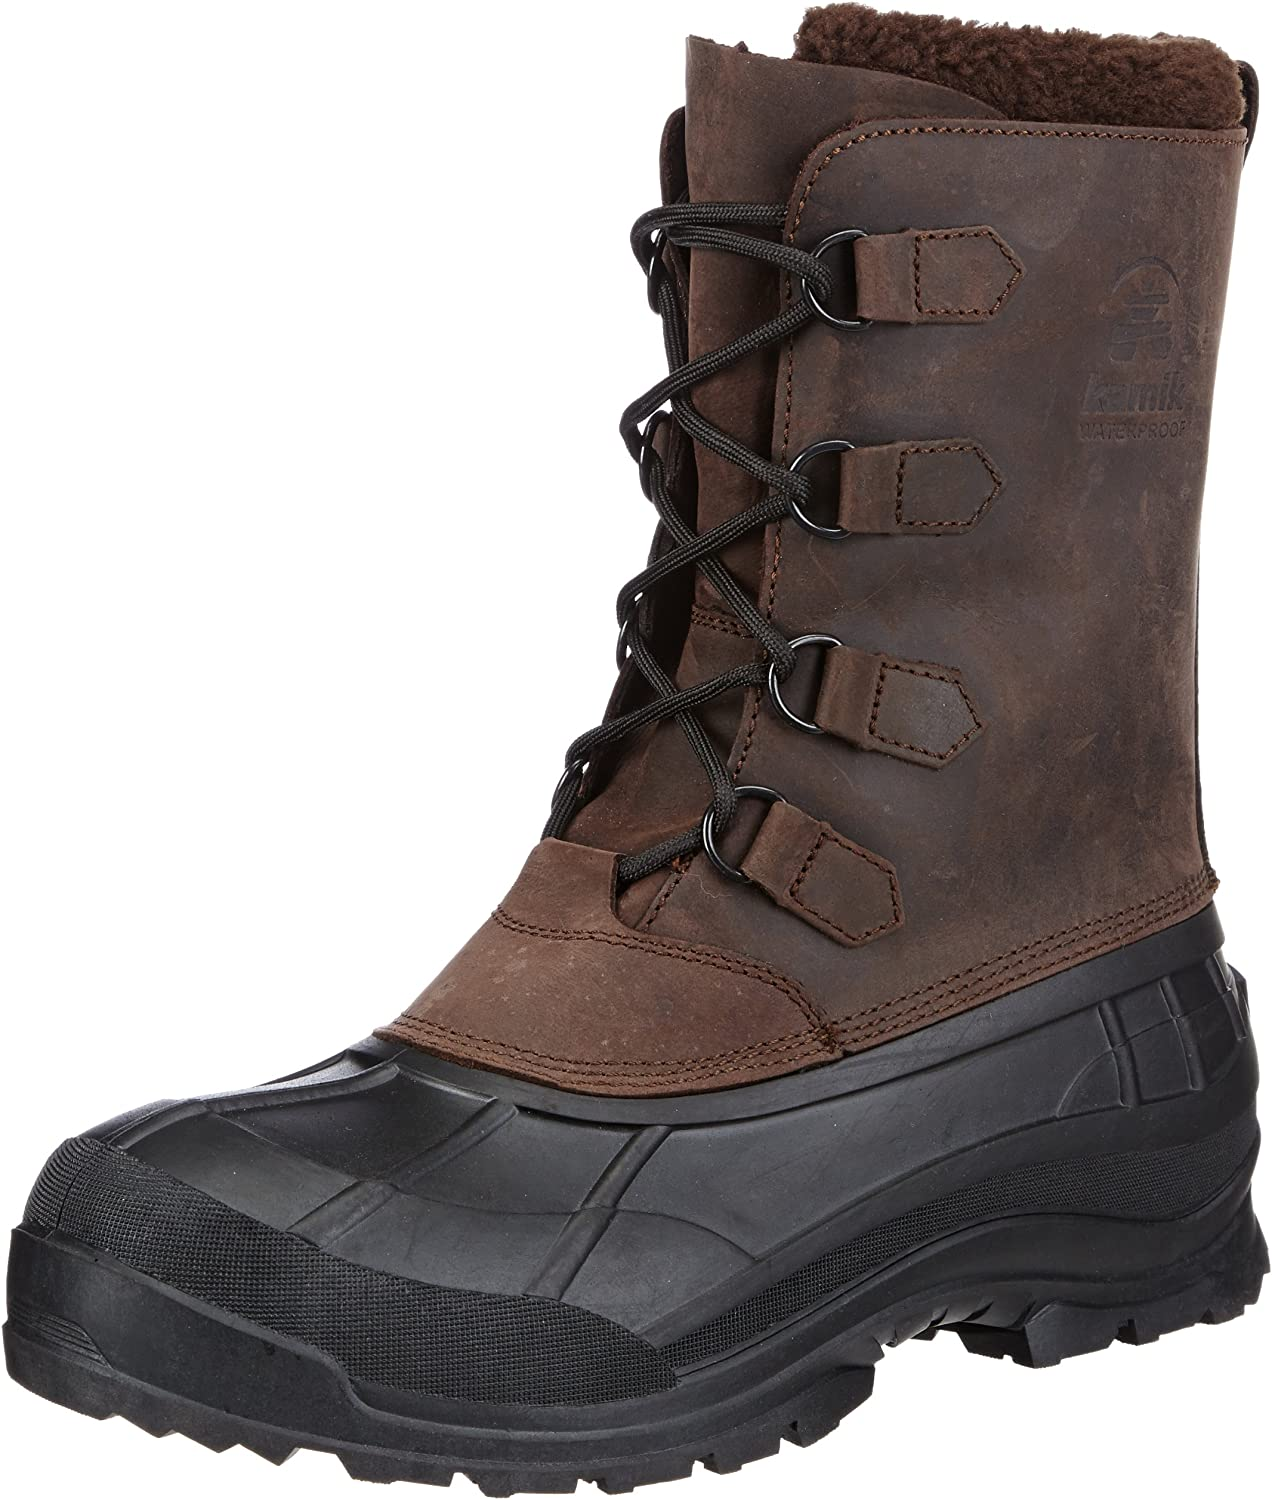 Kamik Men's Alborg Cold Weather Boot